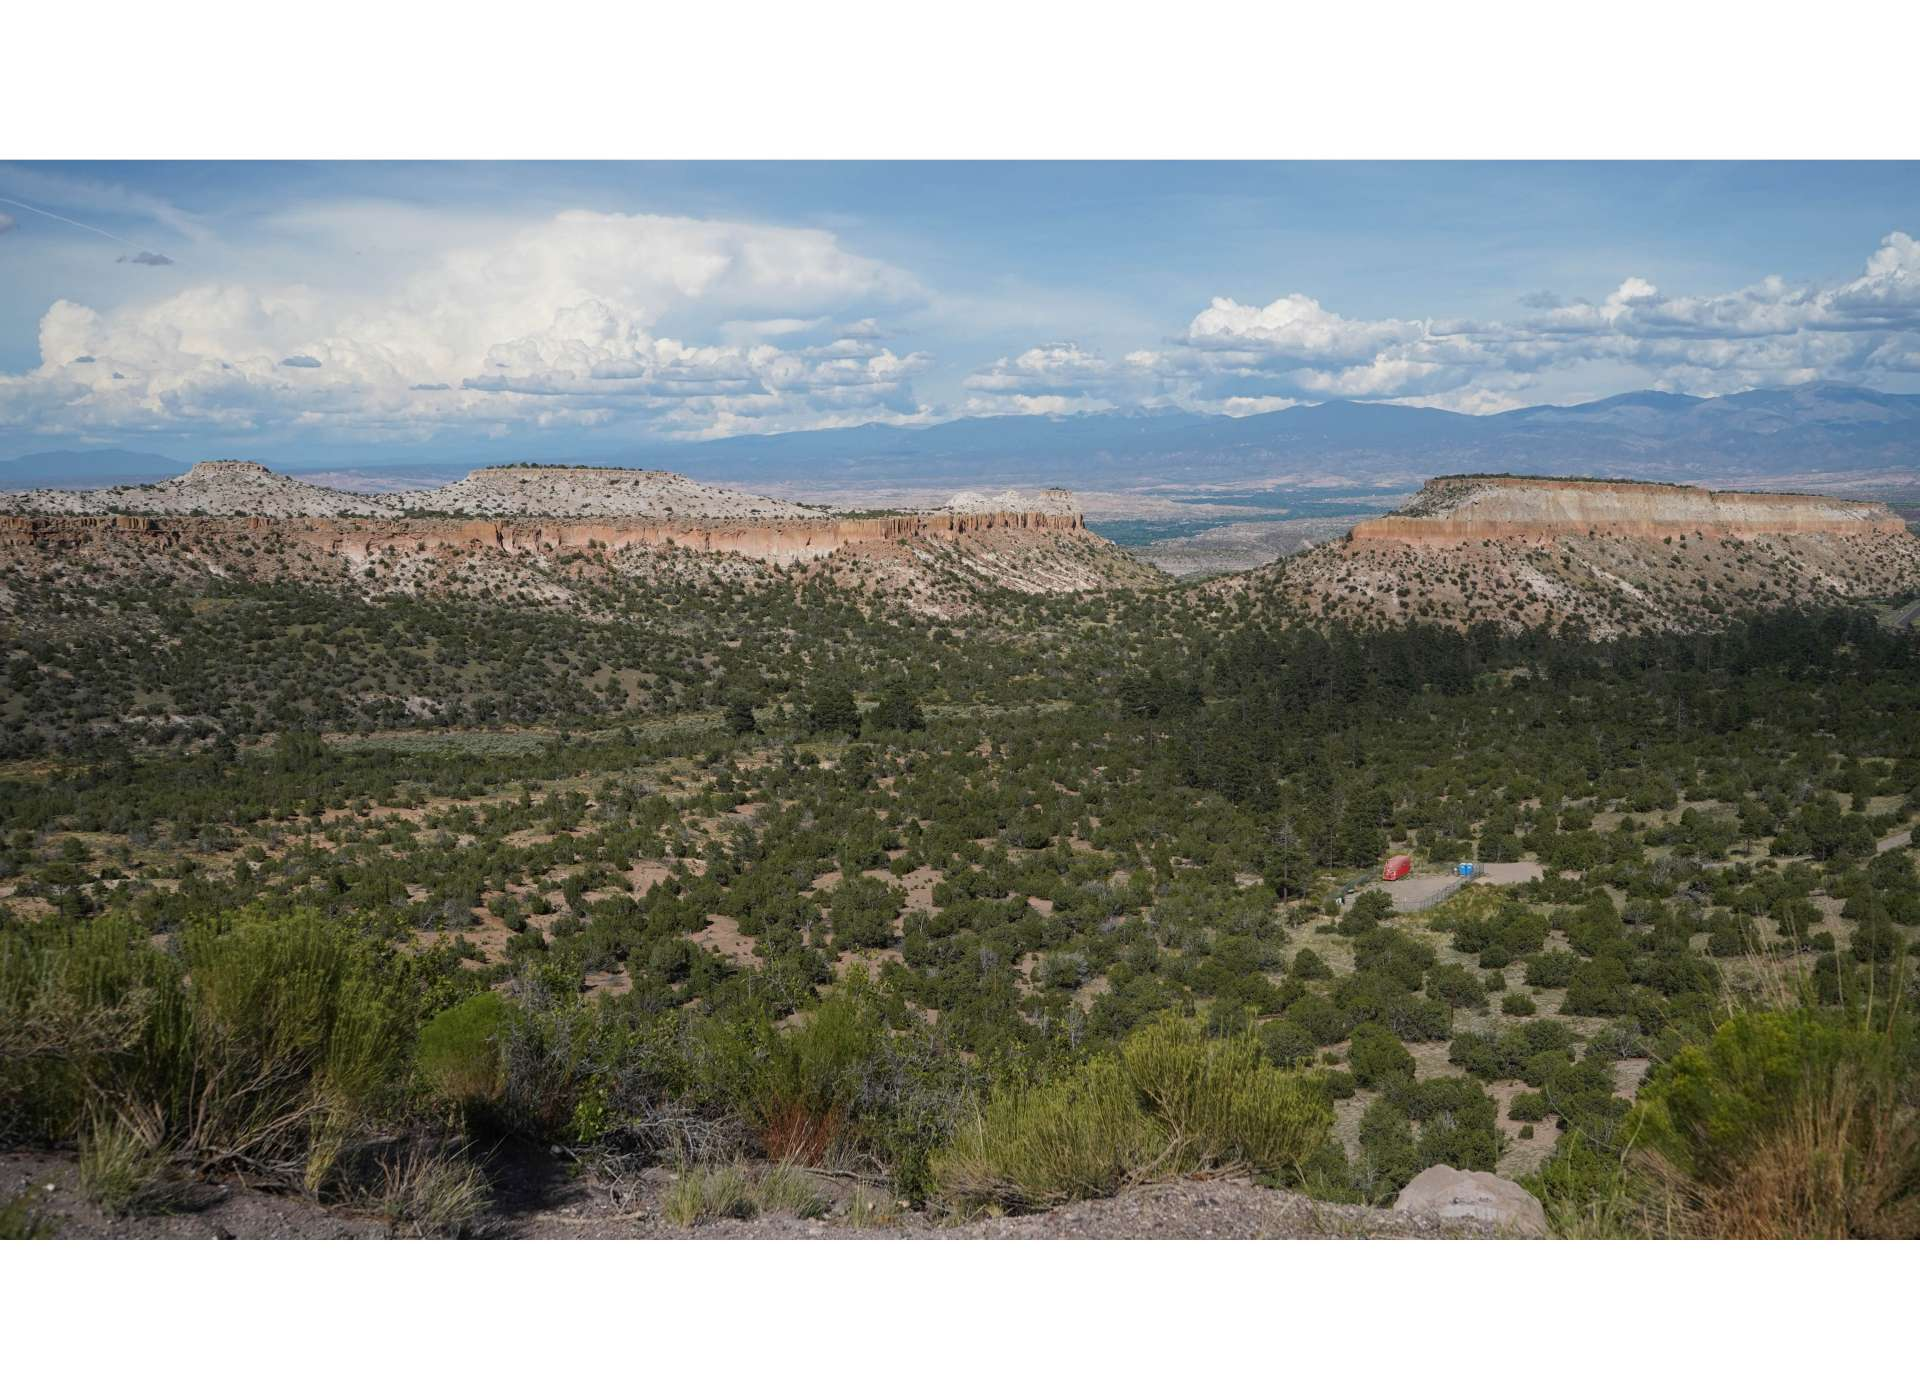 The beautiful natural landscape around Los Alamos.